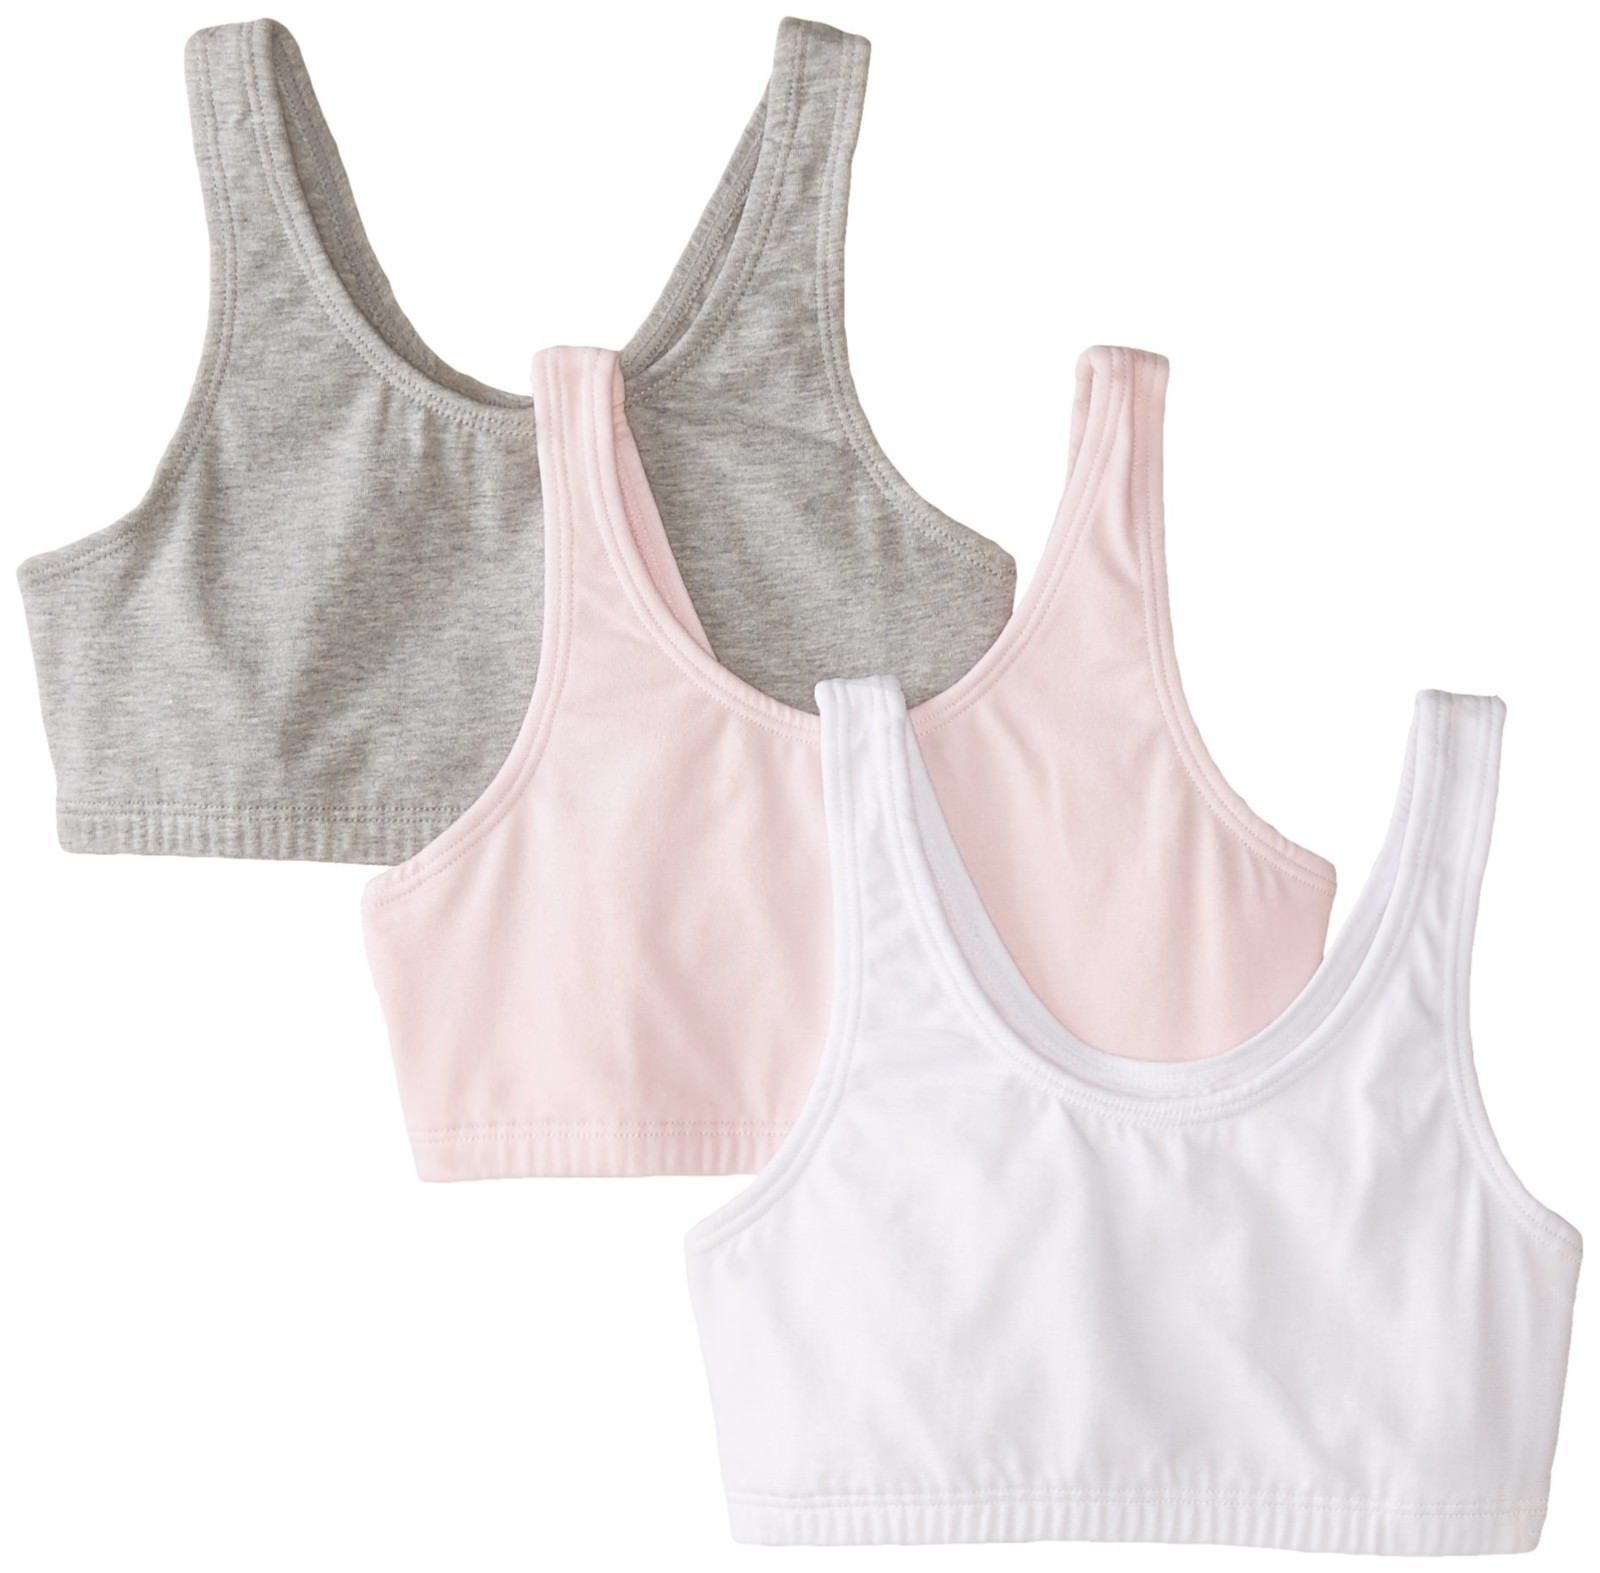 Fruit of the Loom Big Girls Cotton Built-Up Sport Bra